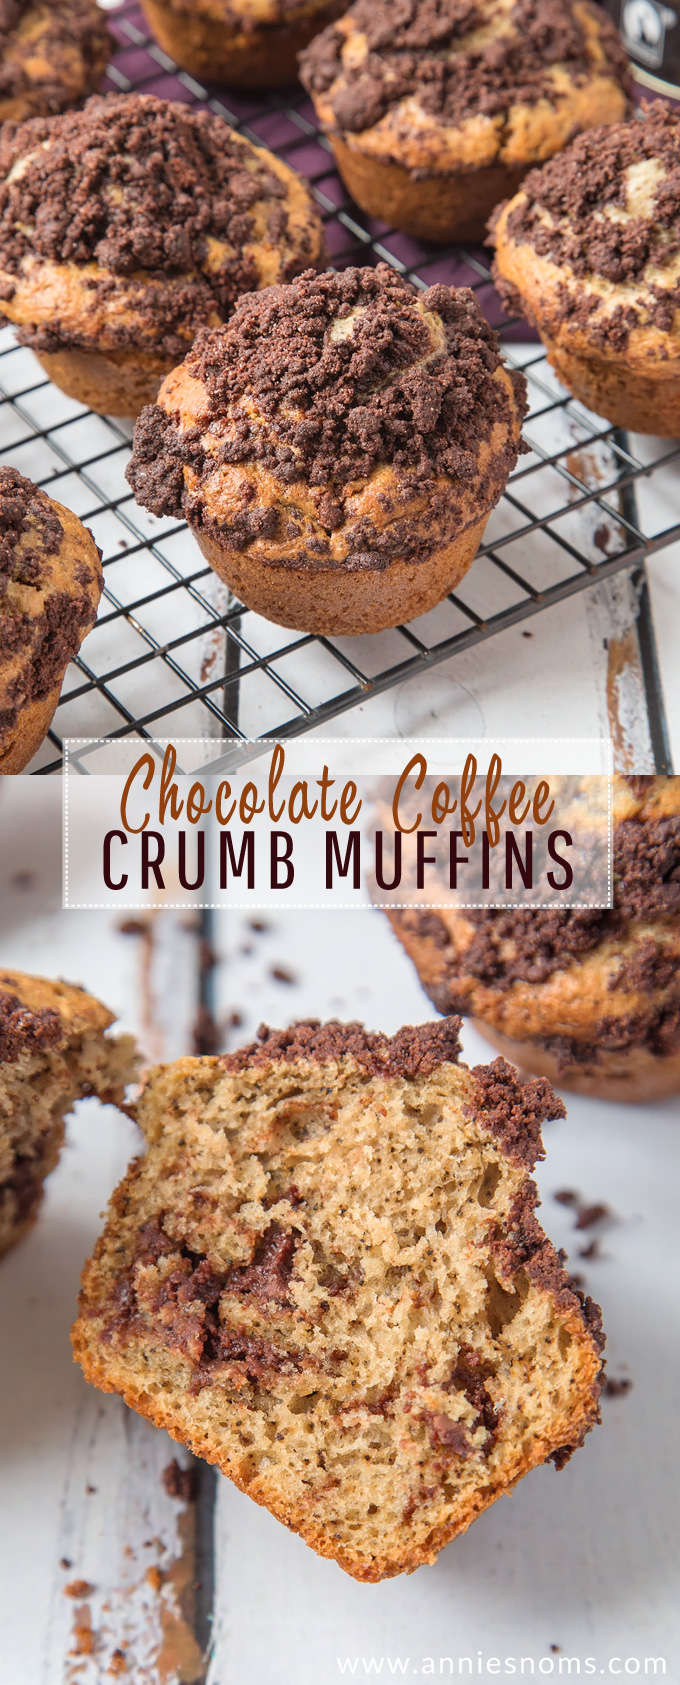 Hearty Chocolate Coffee Crumb Muffins filled with oozing chocolate, flecks of Espresso and topped with a cocoa crumb; scrumptious AND easy to make! #ad #fairtradefortnight